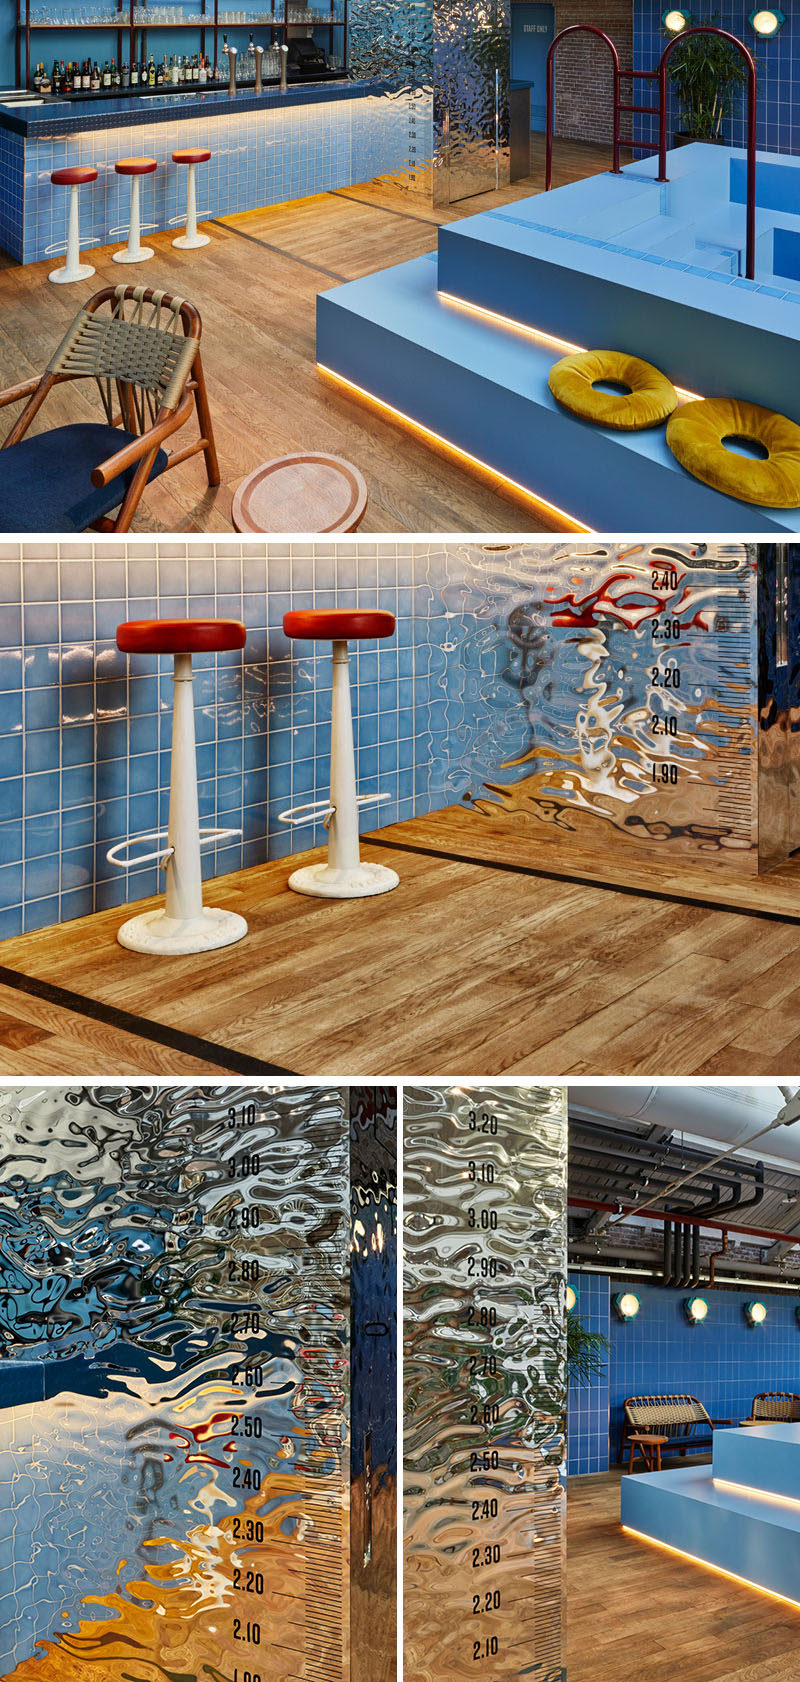 This bar area with a 'fake' pool, is made out of blue rubber and a strip of blue tiles, that are also featured on the bar. A wavy mirror element covers the bar lift, and pool signs and graphics reference swimming pool rules.